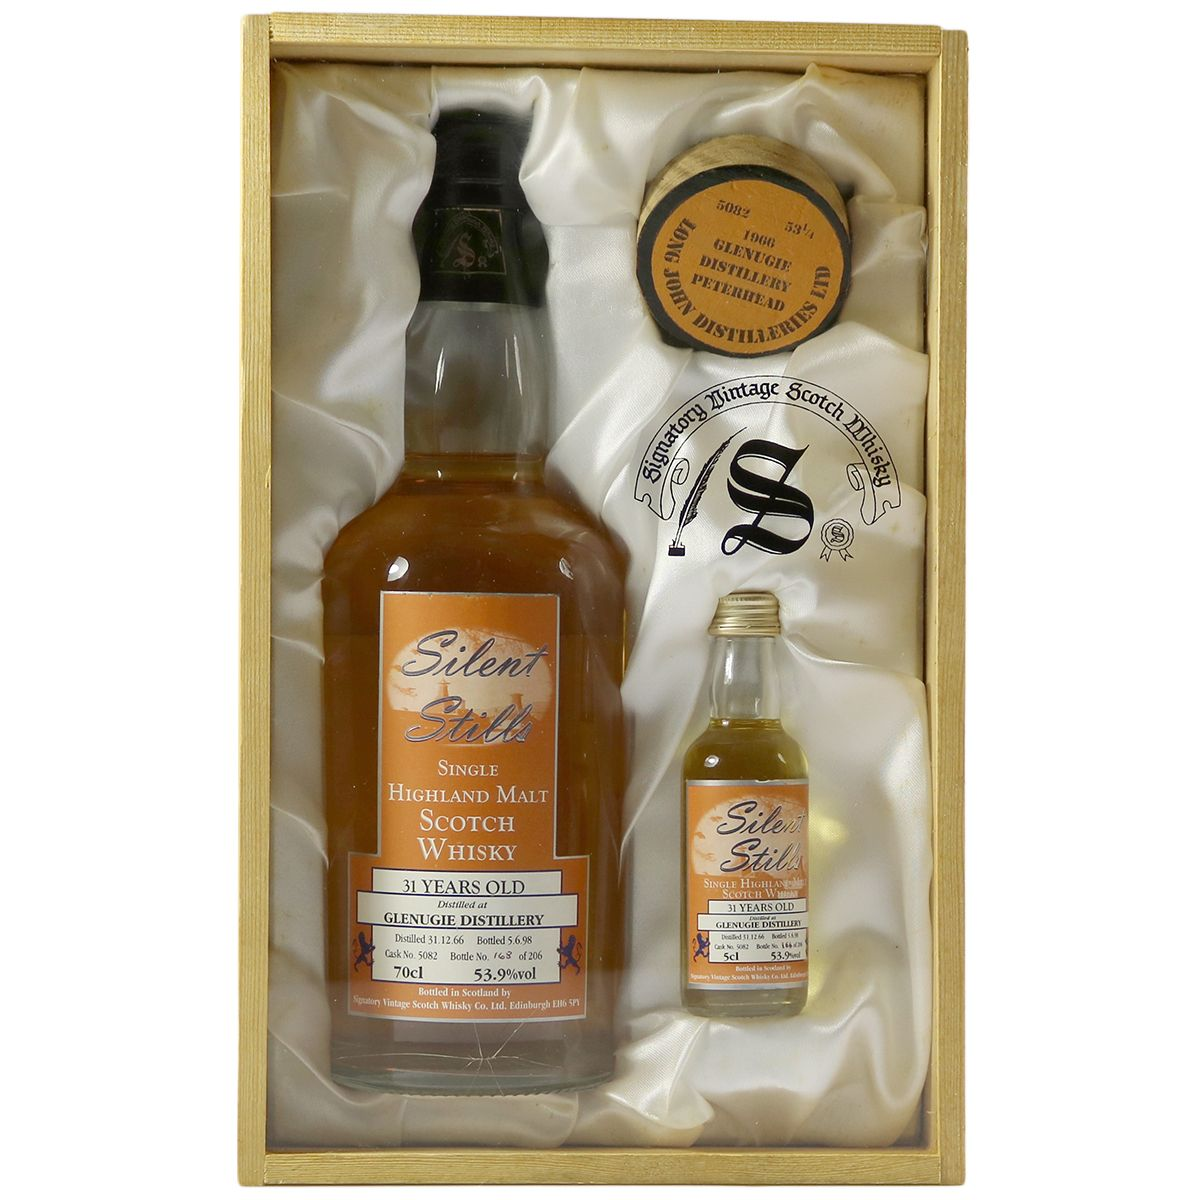 Glenugie 1966 31 Year Old, Signatory Silent Stills | The Whisky Vault